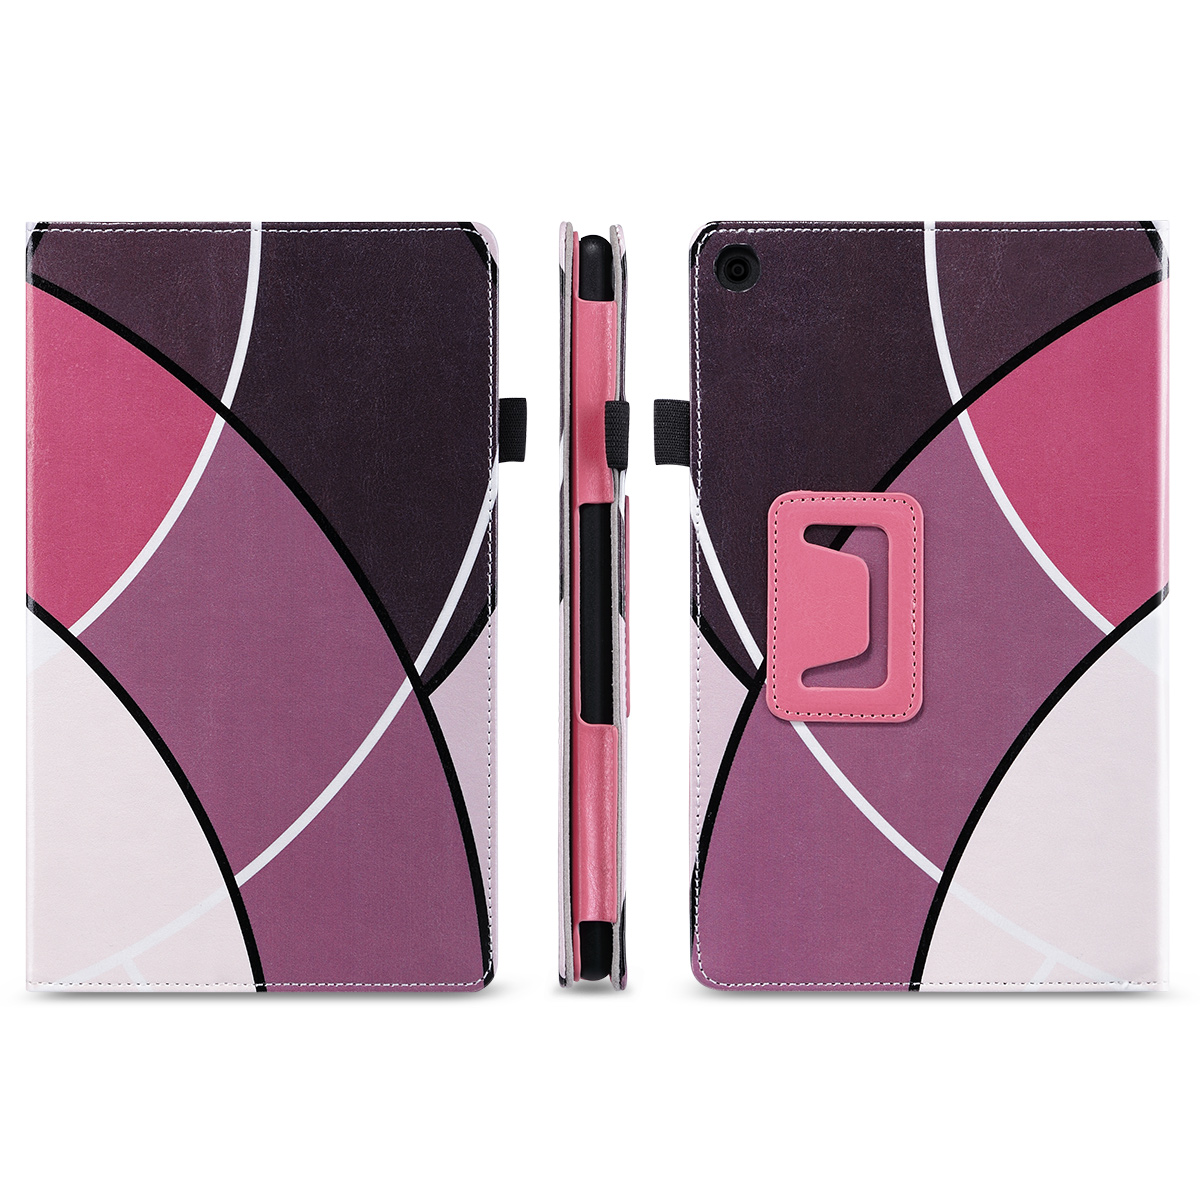 Flip-Wallet-Leather-Case-Cover-For-All-New-Amazon-Fire-HD-8-2016-Release-6th-Gen thumbnail 23